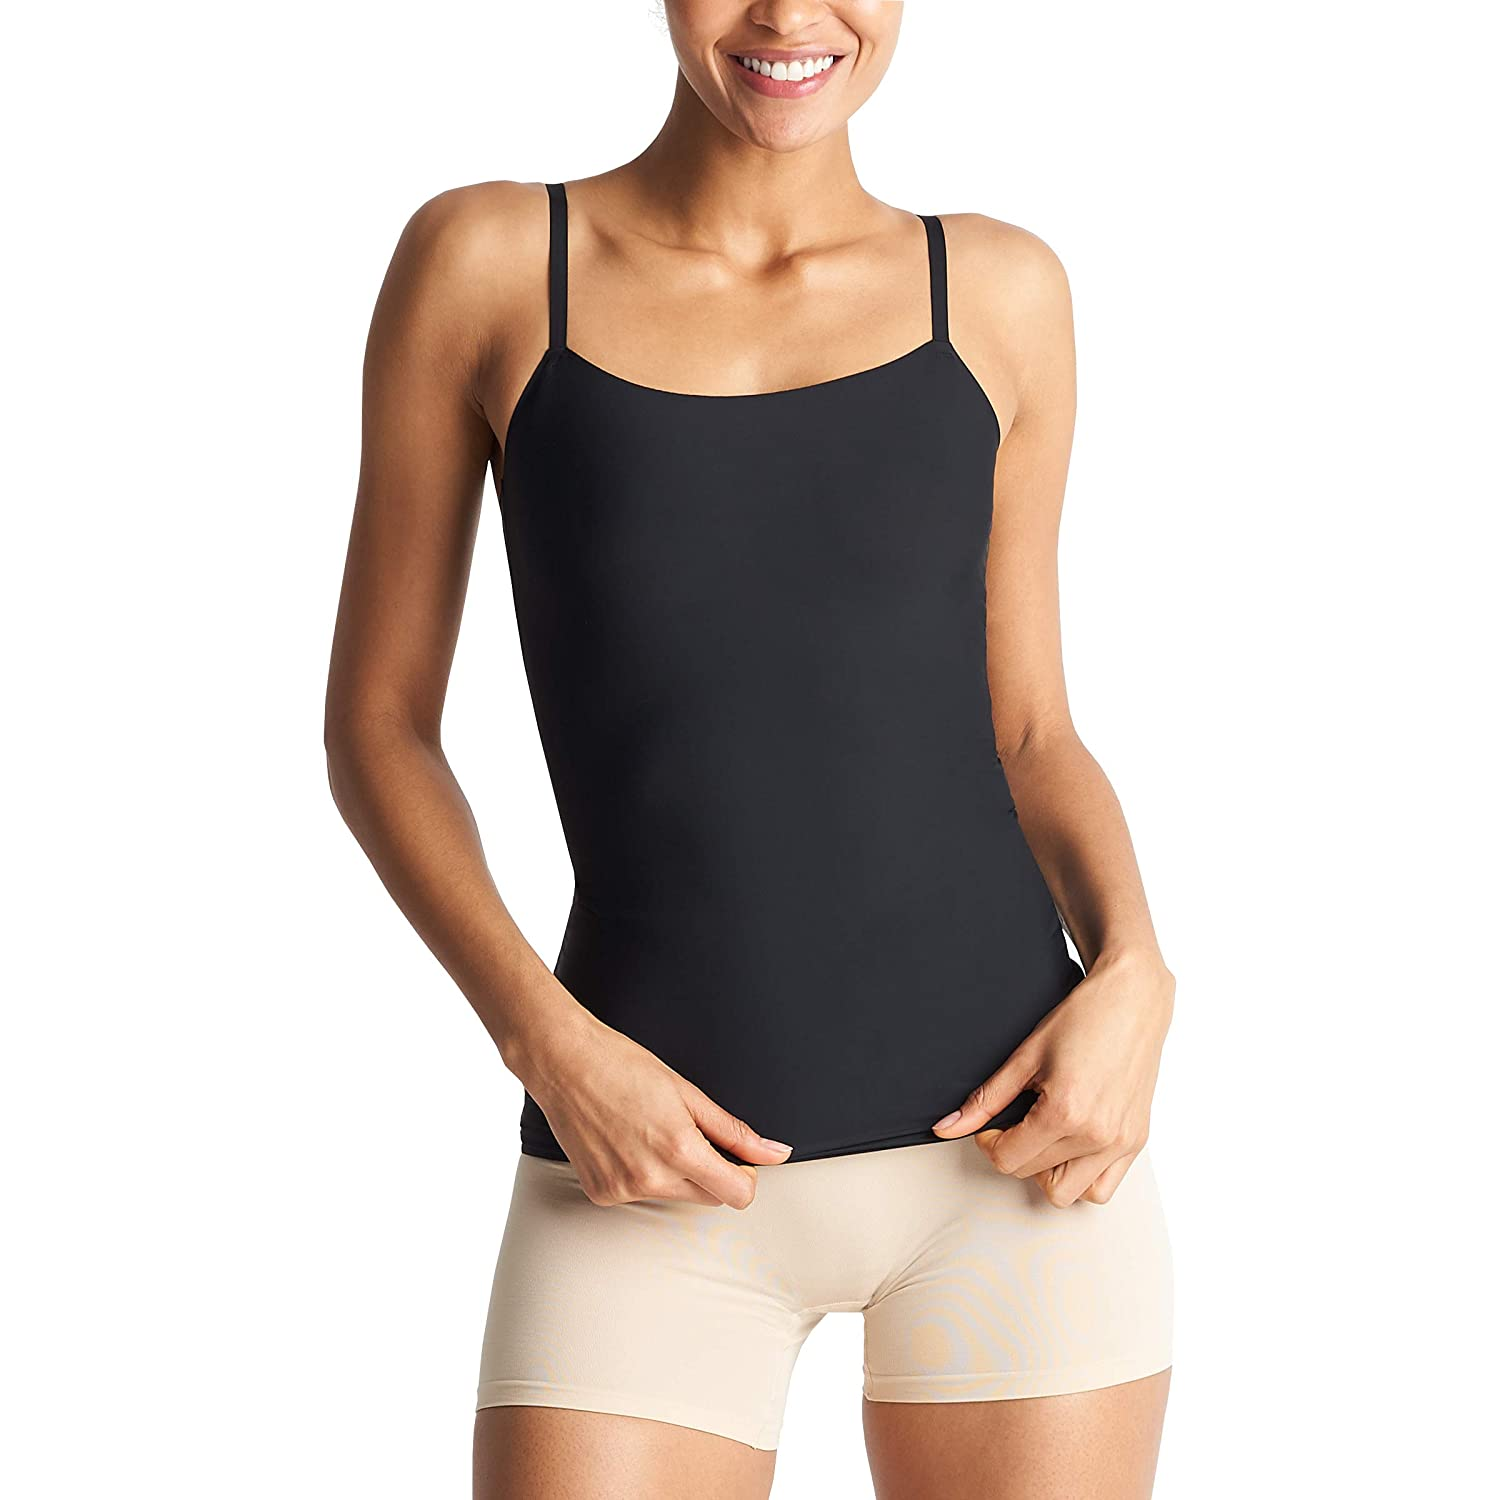 Black Yummie Womens 3in1 Shaping Camisole Shapewear Top